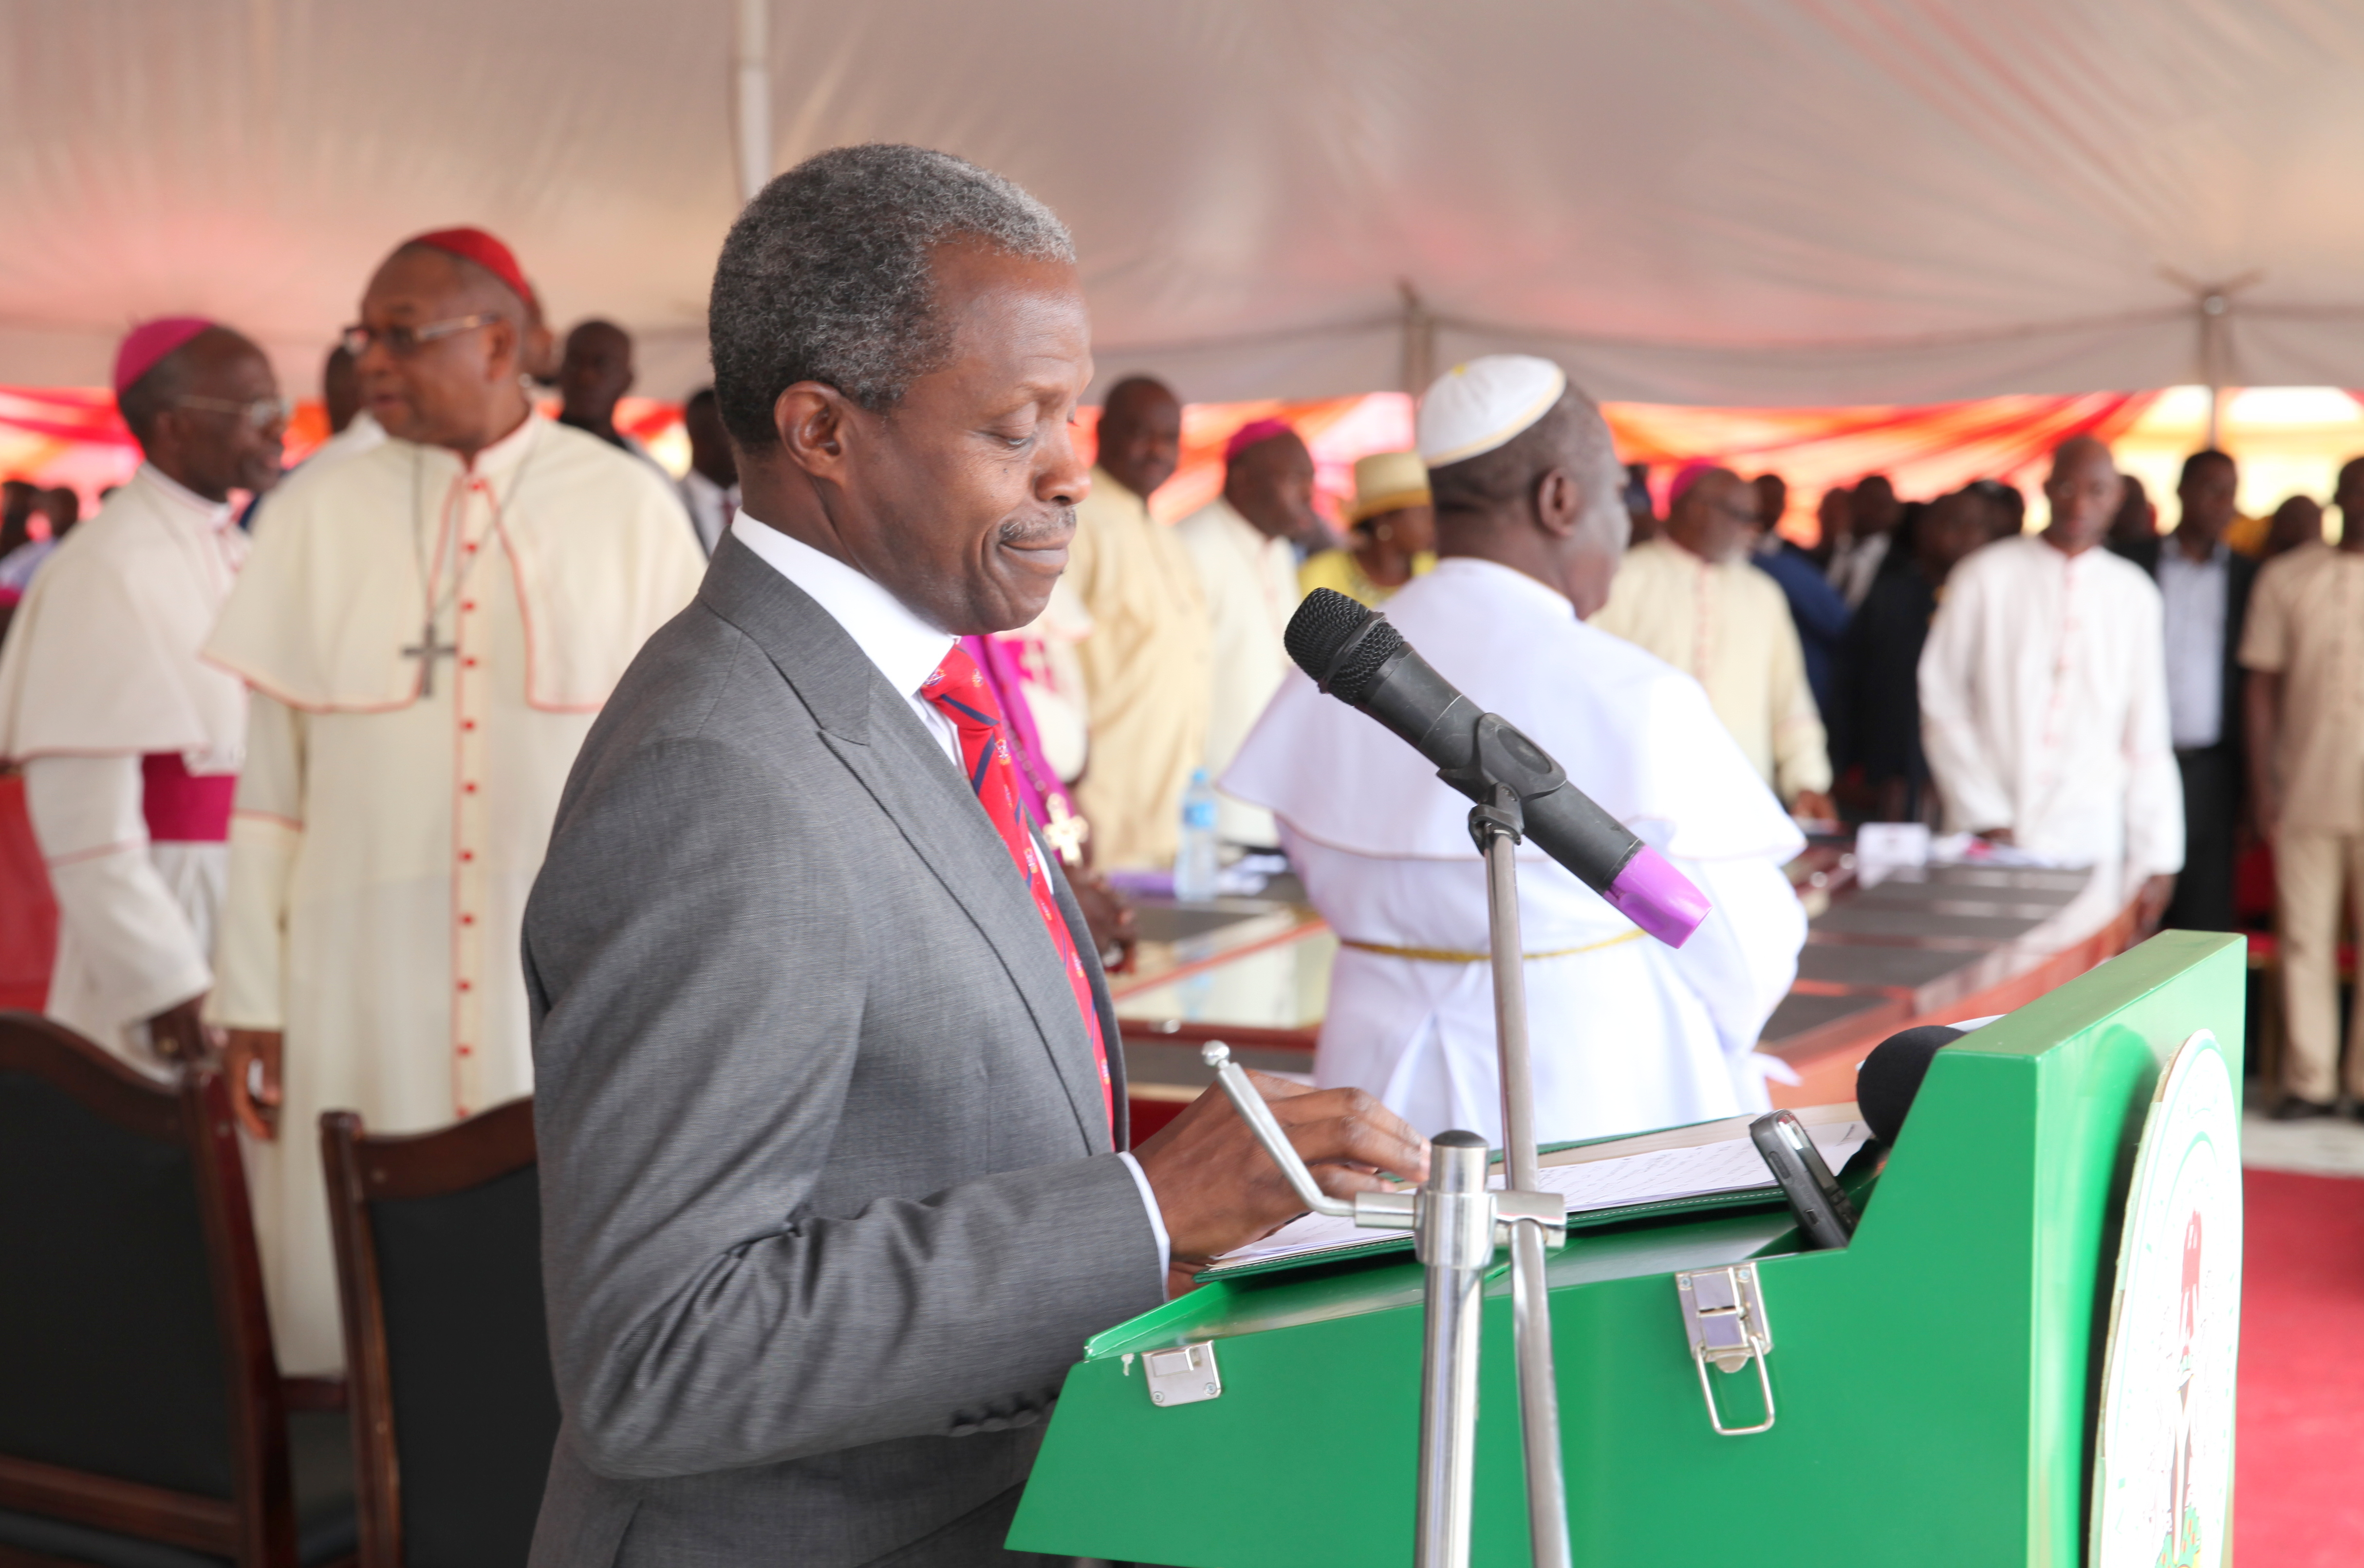 VP Osinbajo At The 2nd Plenary Assembly Of Catholic Bishops' Conference Of Nigeria (CBCN) Port Harcourt On 13/09/2015